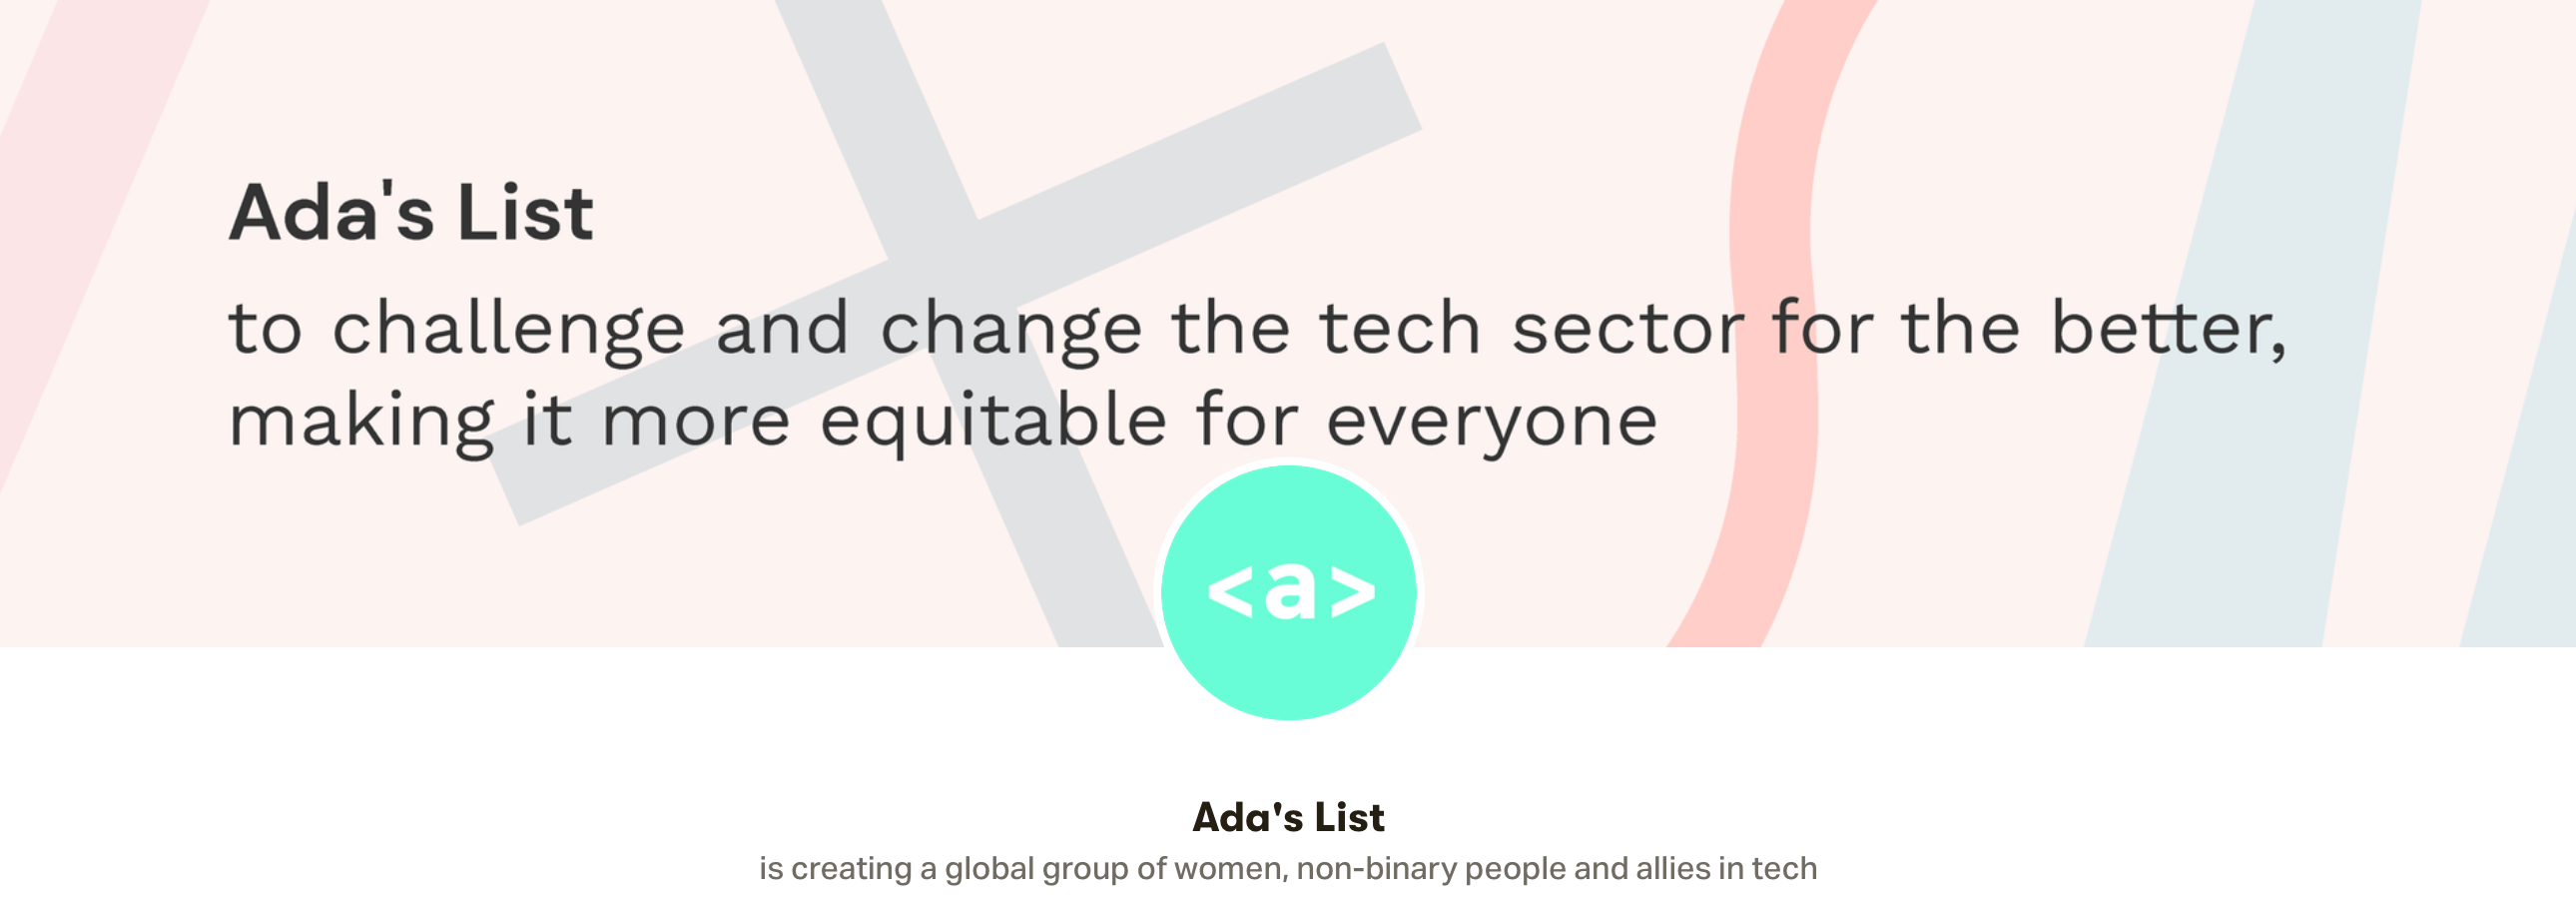 An image of the Ada's List Patron page: Ada's List is creating a global group of women, non-binary people, and allies in tech